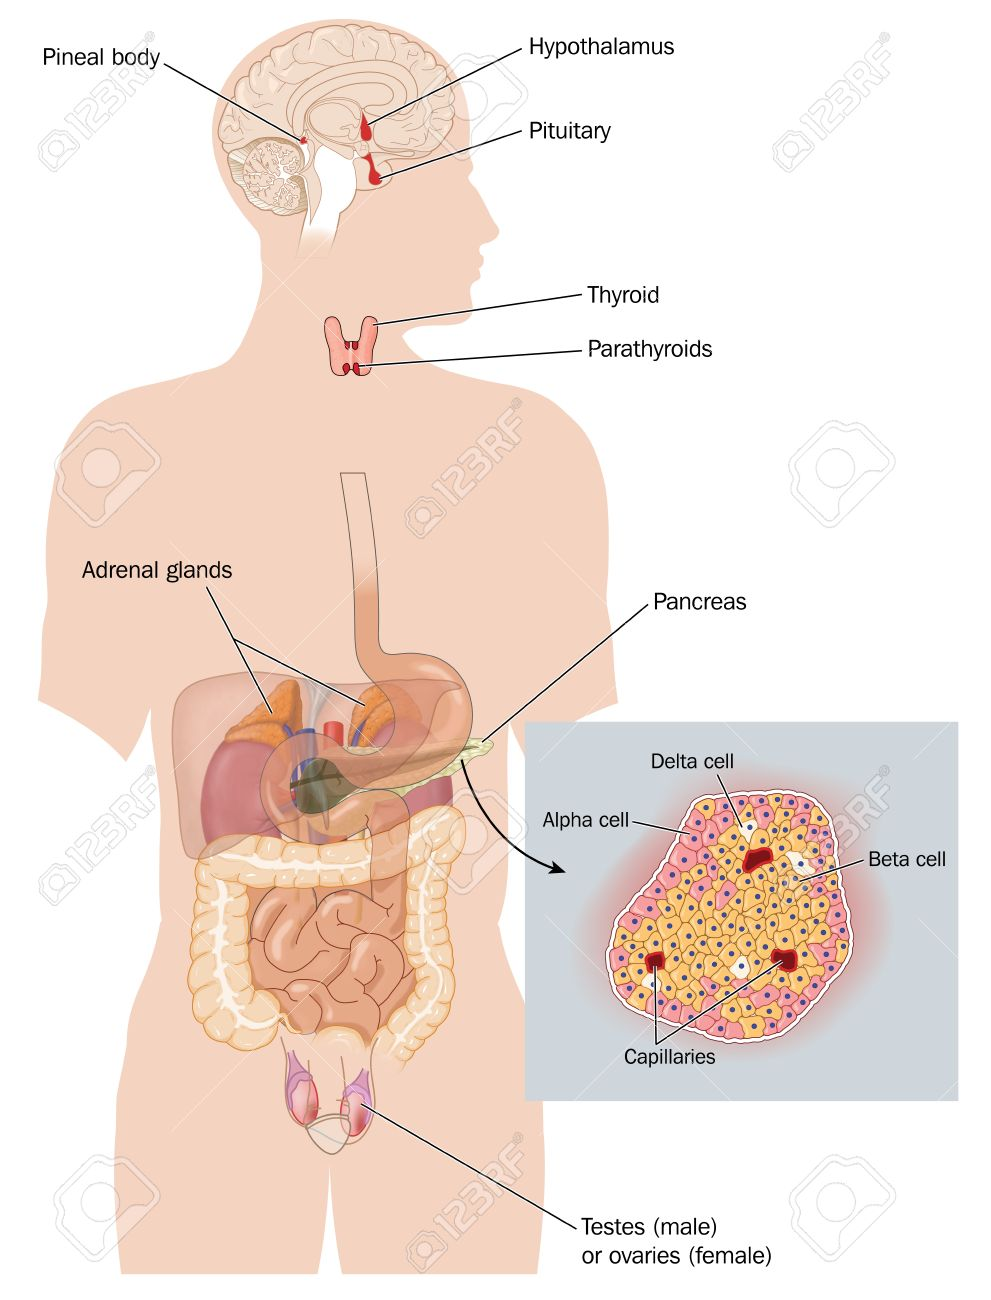 Organs That Form The Endocrine System And Sites Of Hormone